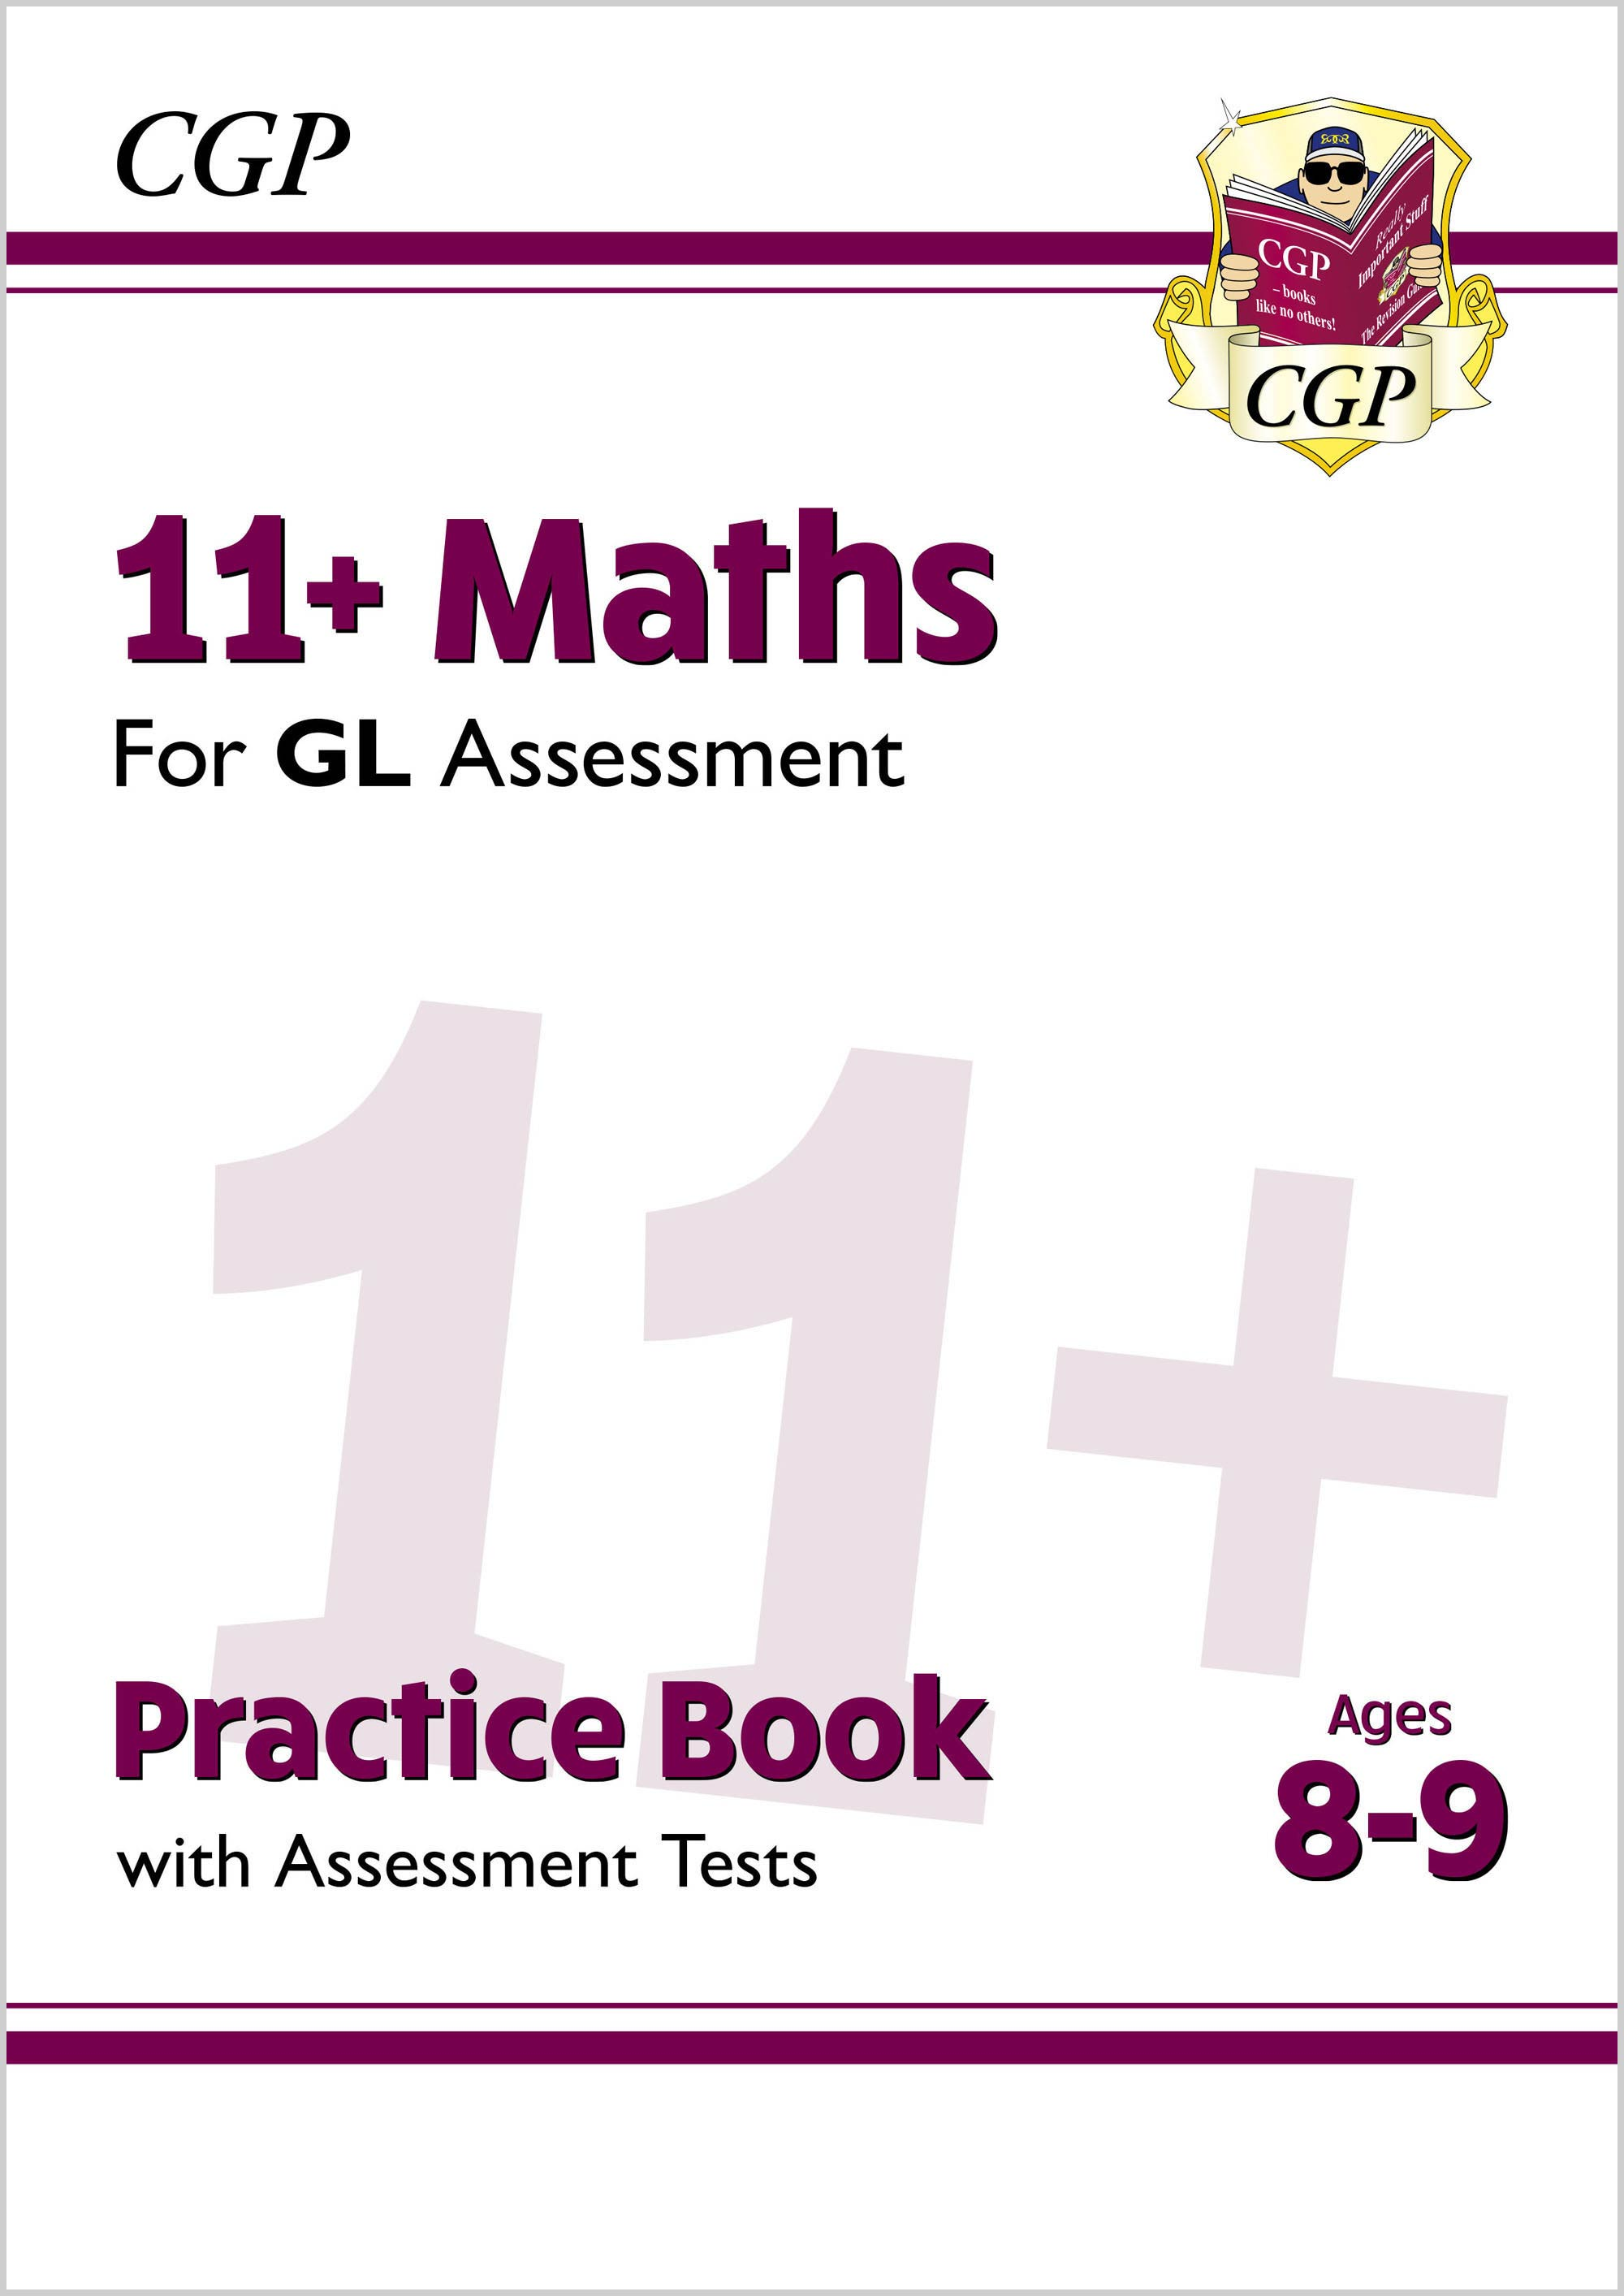 M4QE2DK - New 11+ GL Maths Practice Book & Assessment Tests - Ages 8-9